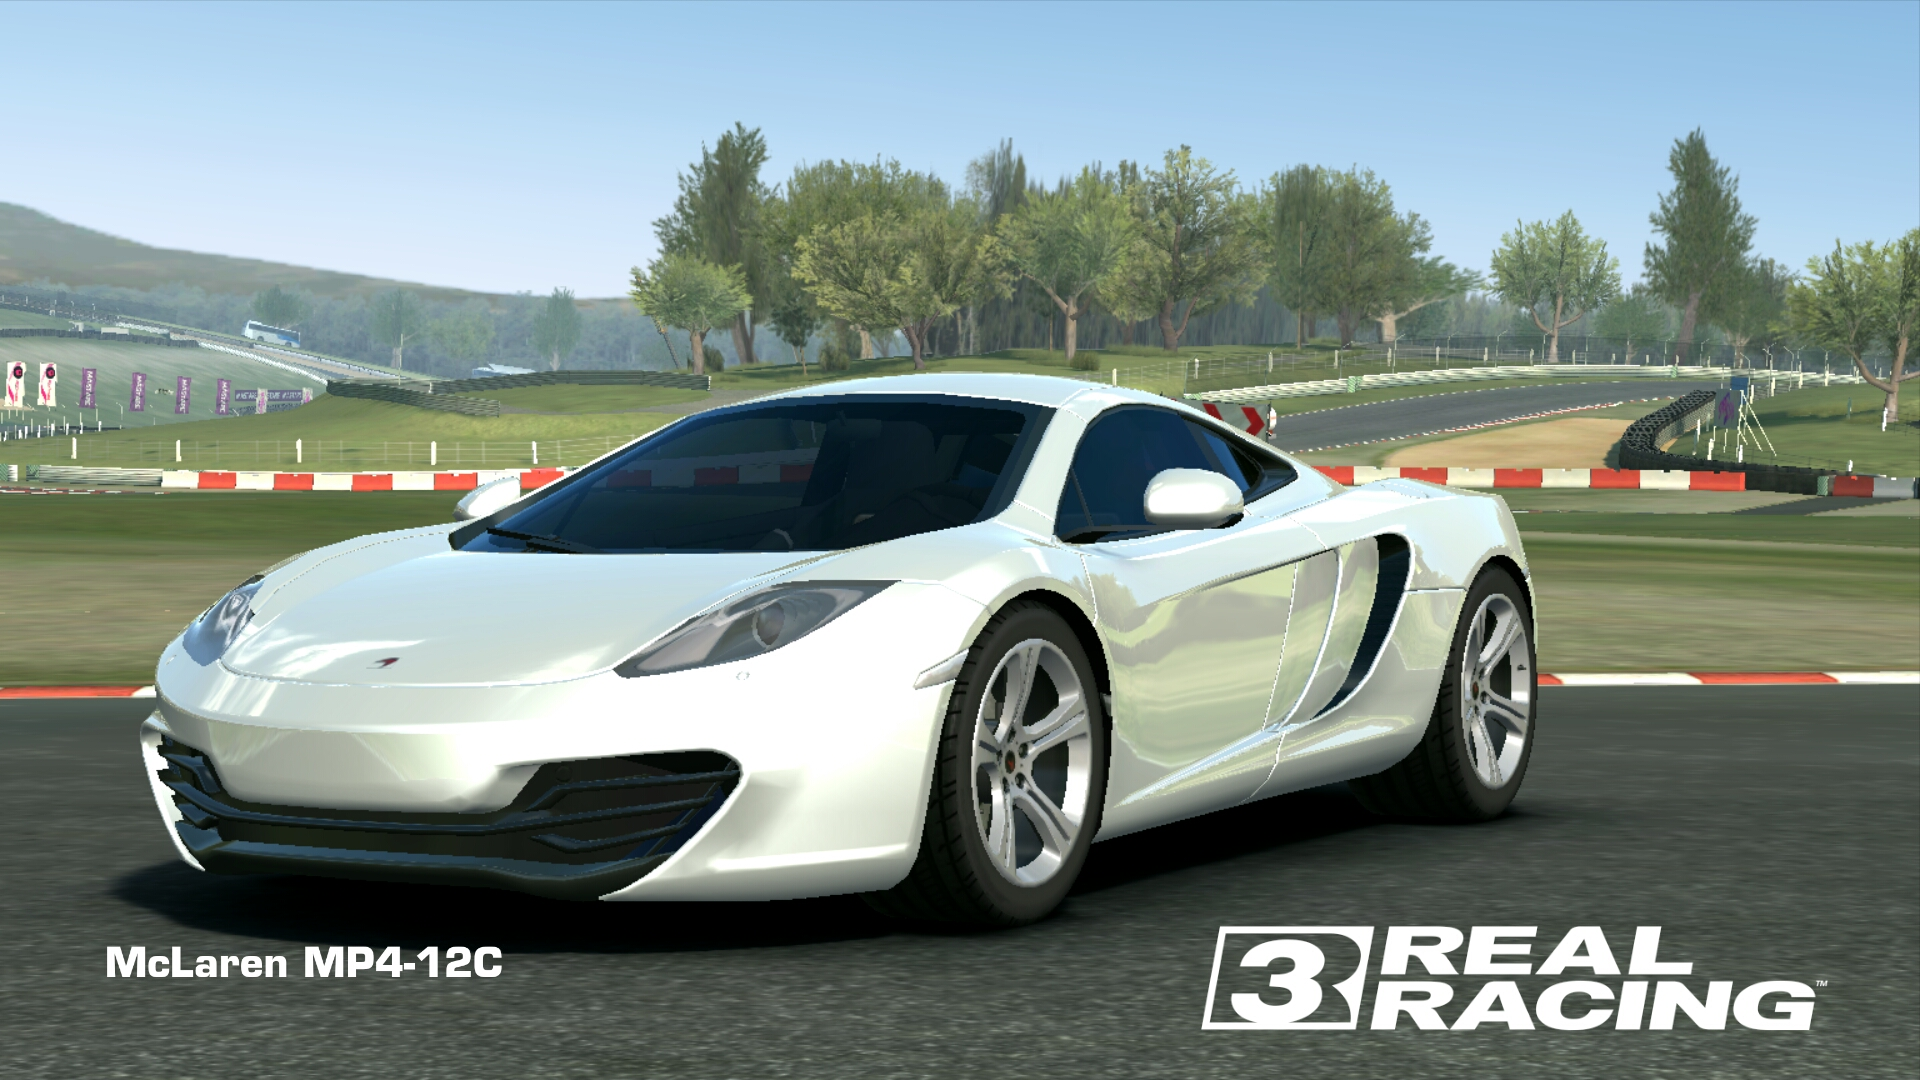 latest?cb=20150301171028 Amazing Price Of Bugatti Veyron 16.4 Grand Sport Vitesse In Real Racing 3 Cars Trend